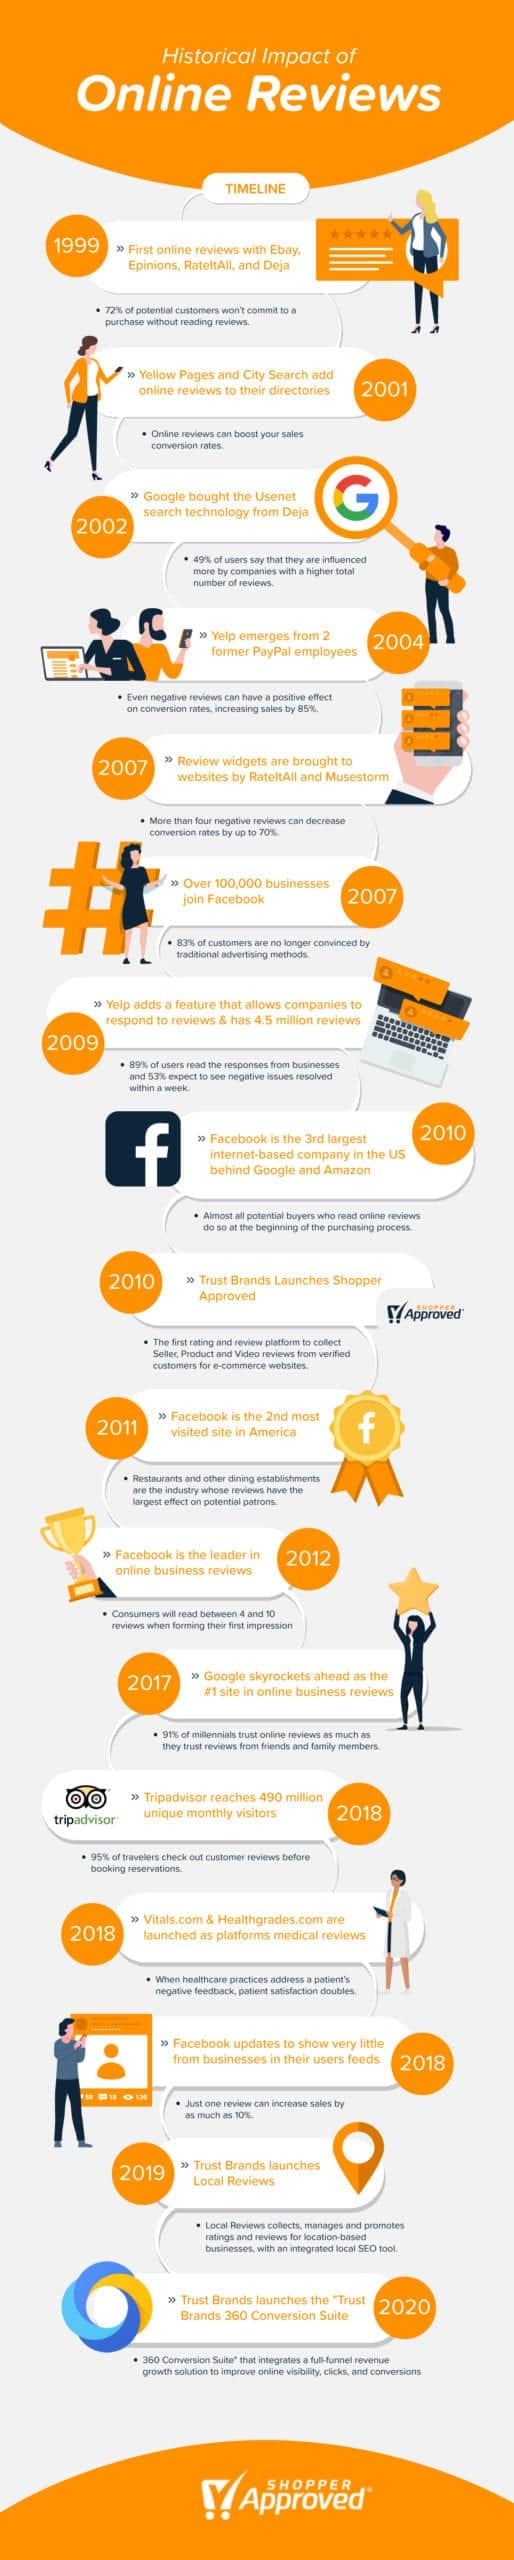 infographic detailing the history of online reviews